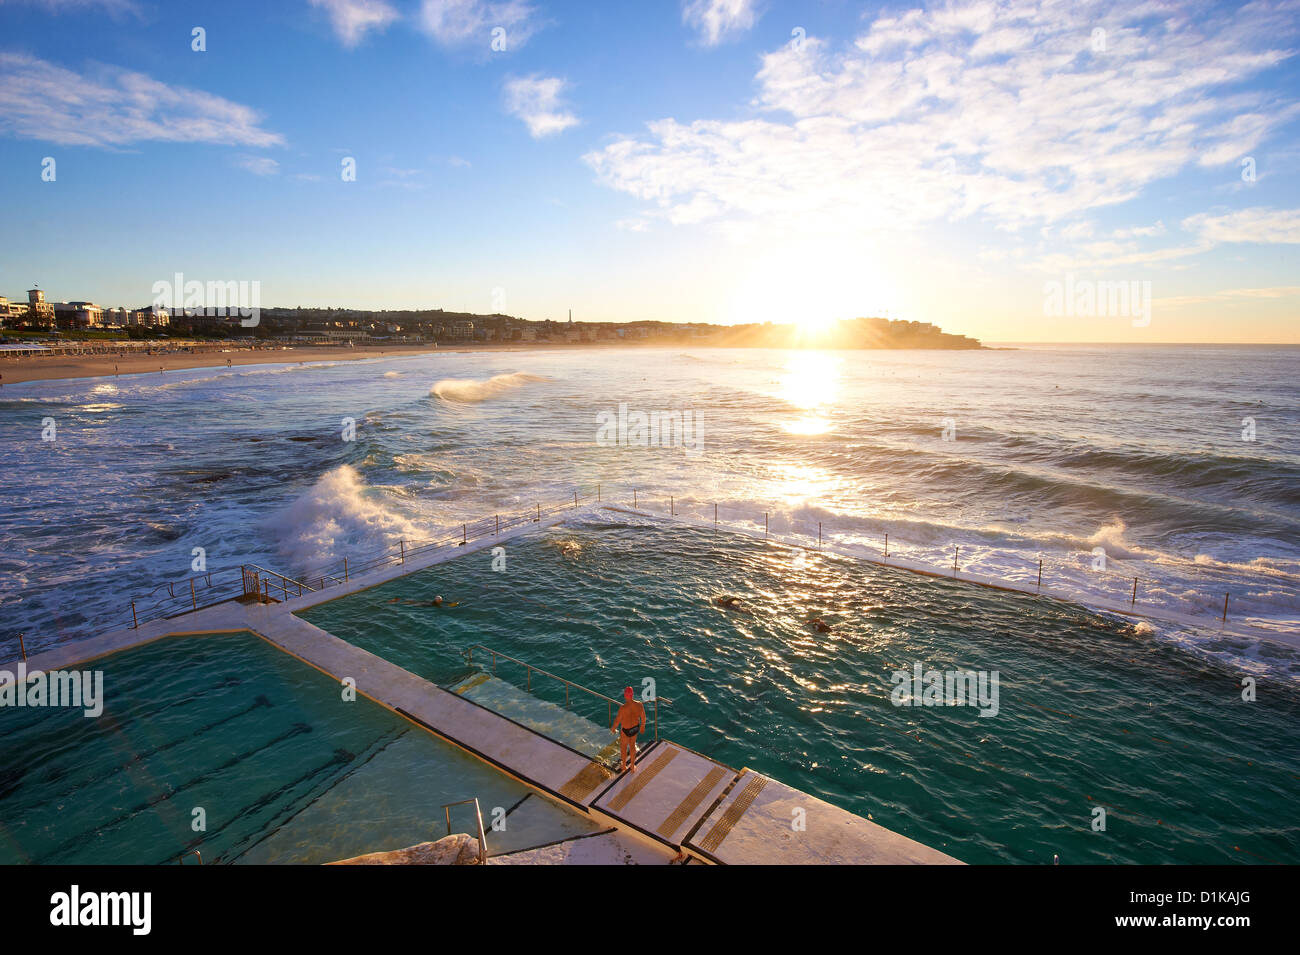 Bondi Icebergs, Sydney, New South Wales Australien Stockbild